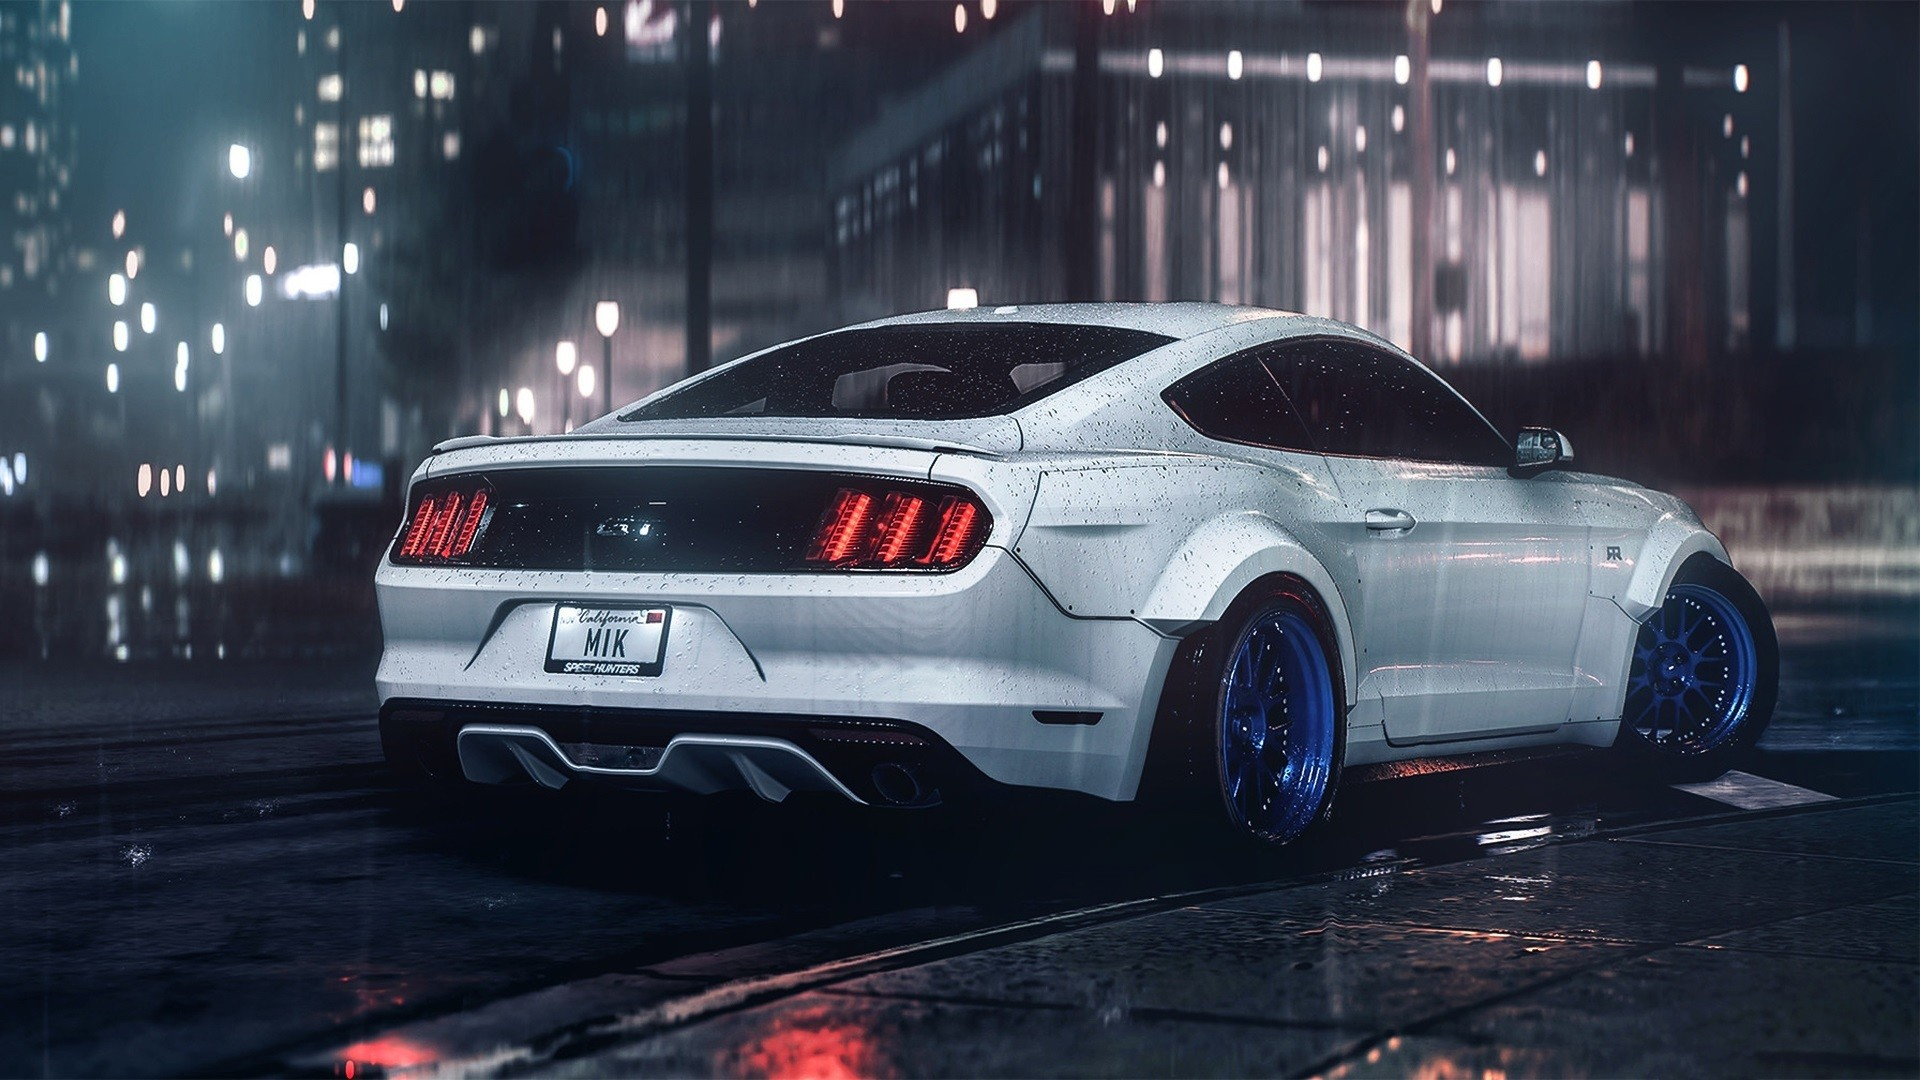 Mustang Gt Wallpapers (76+ images)